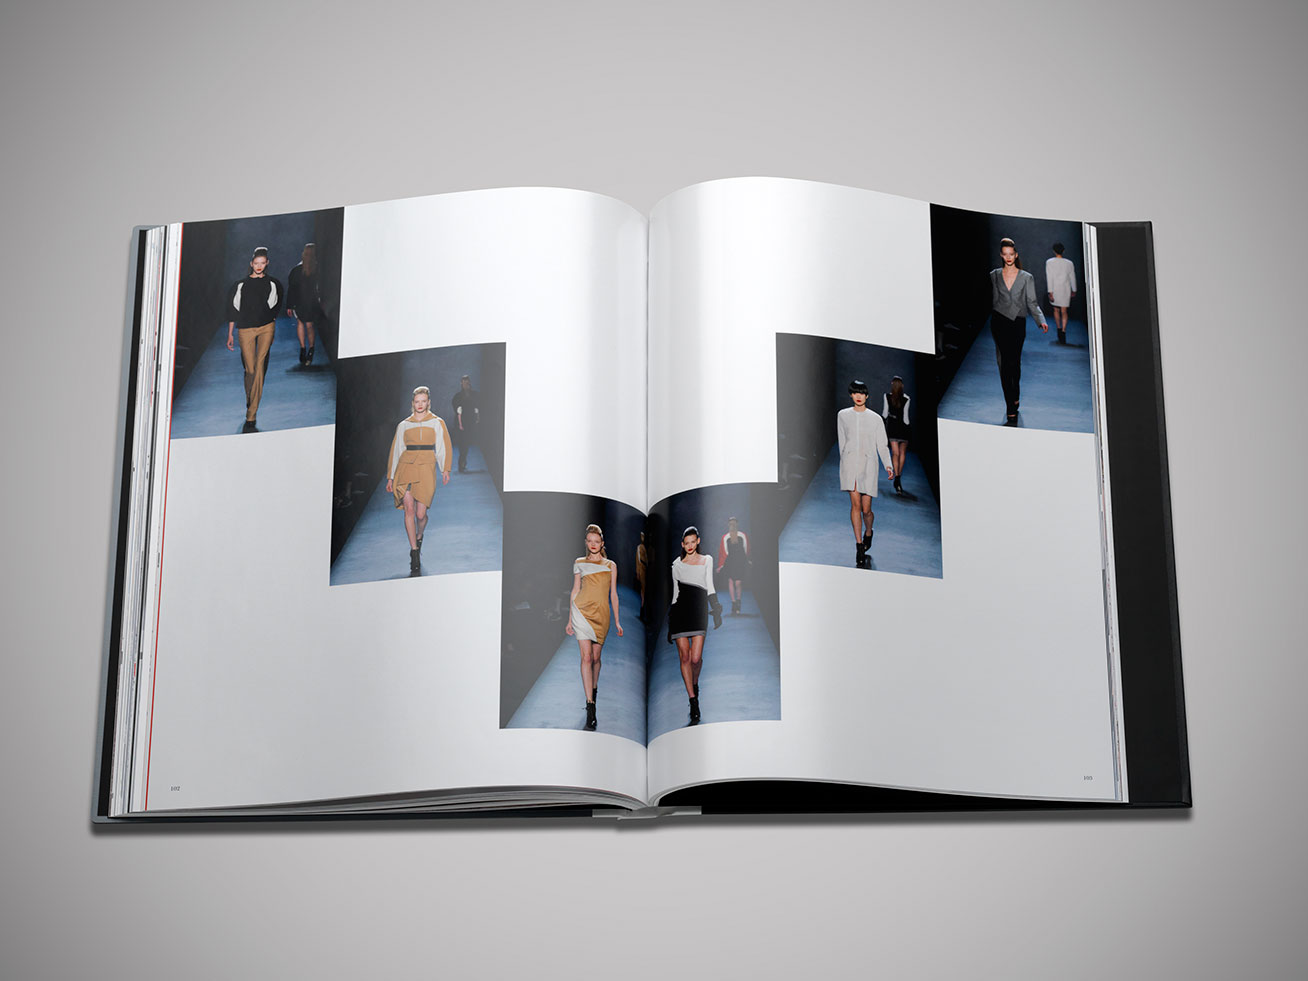 Runway shots of Prabal Gurung's collection in brand book designed and produced by DTE Studio